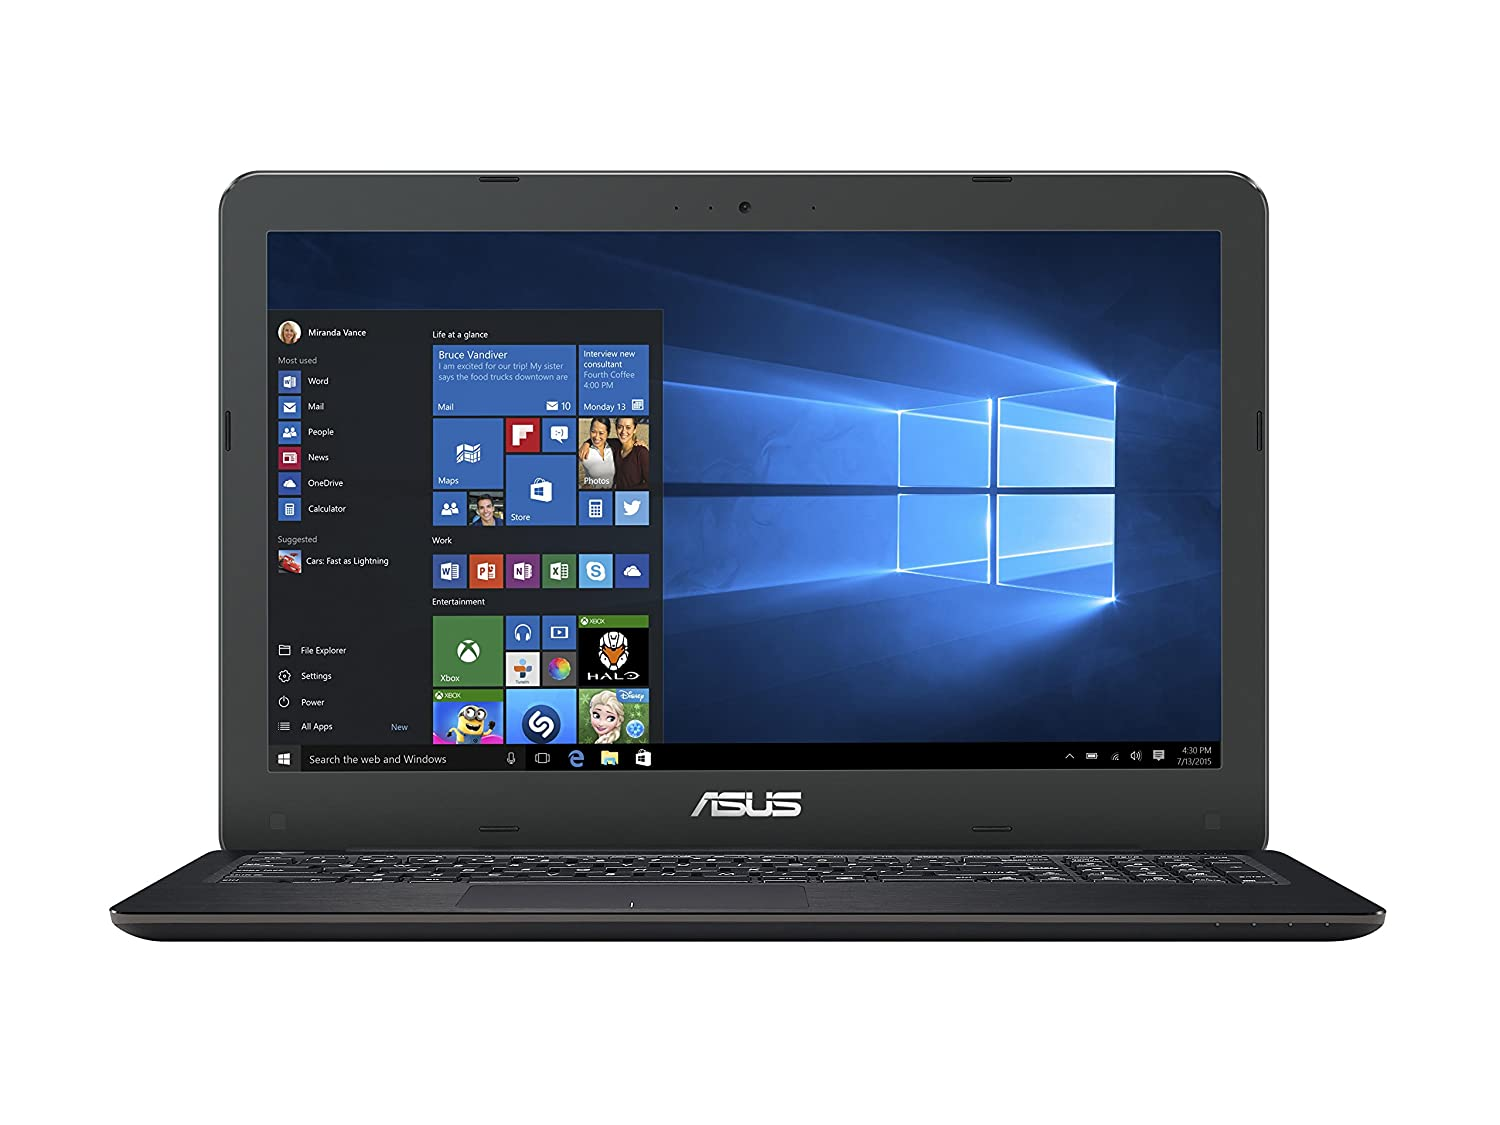 ASUS VIVOBOOK X556UAM LAPTOP DRIVER DOWNLOAD (2019)